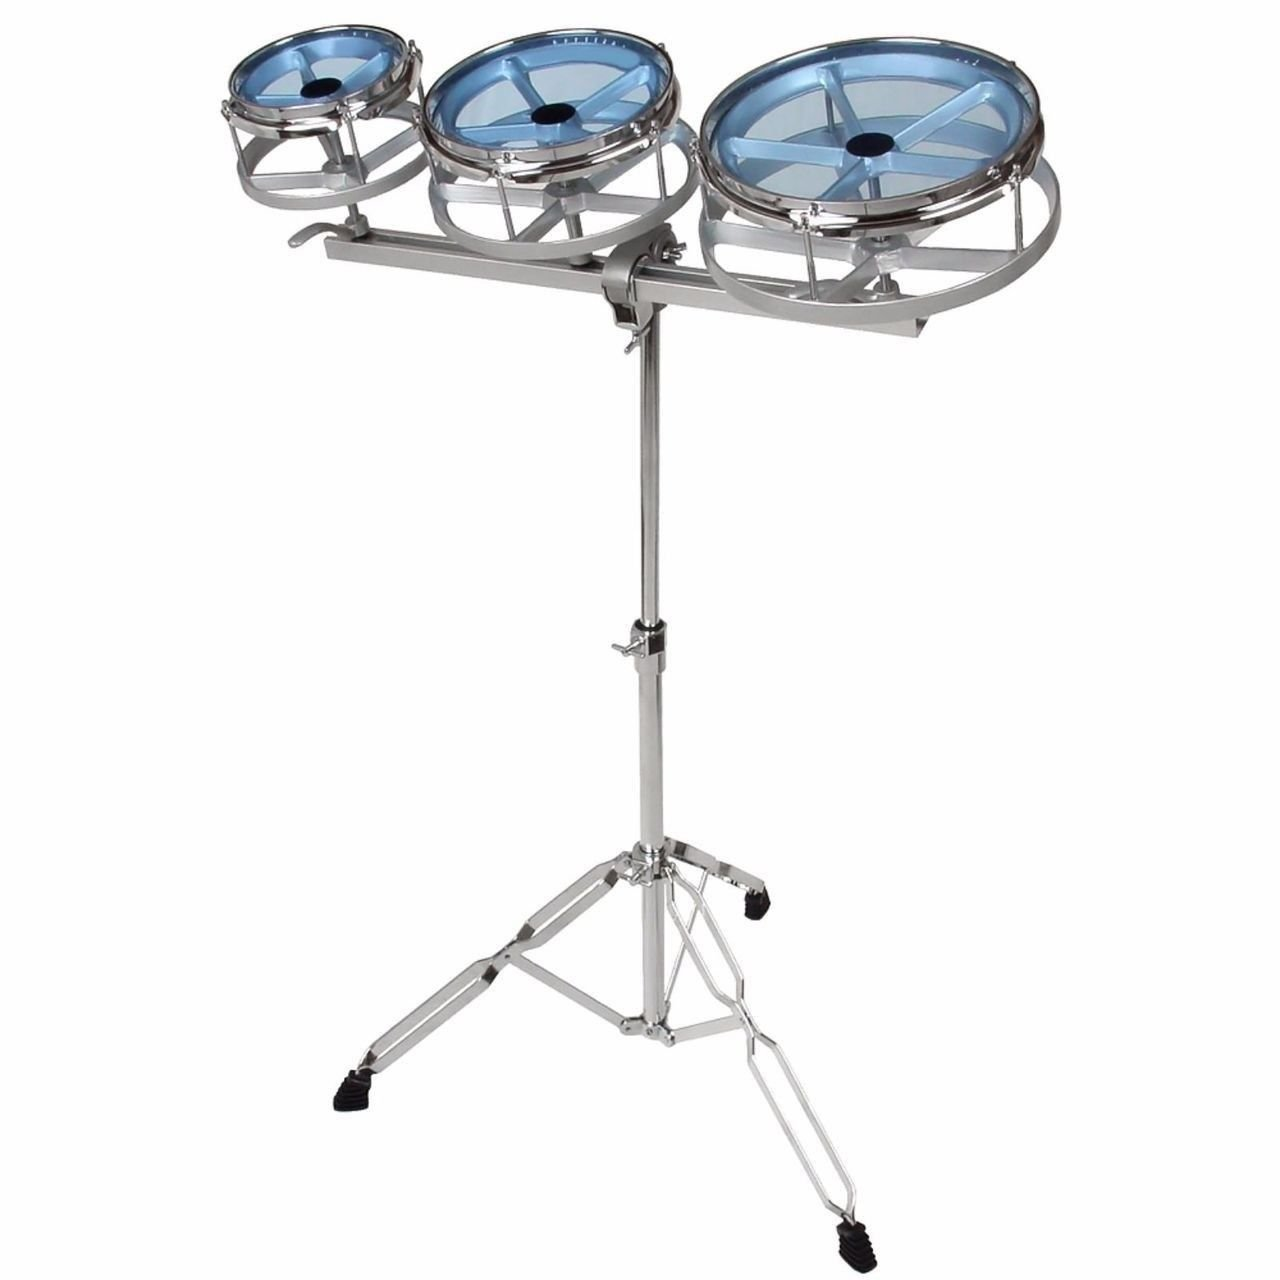 GP Percussion RT68 Tunable Roto Tom Drum Set with Adjustable Double Braced Floor Stand, Adjustable Track, Plated Counterhoop, Drum Key, and Drumsticks - Quick Pitch Shift Drums by WJM